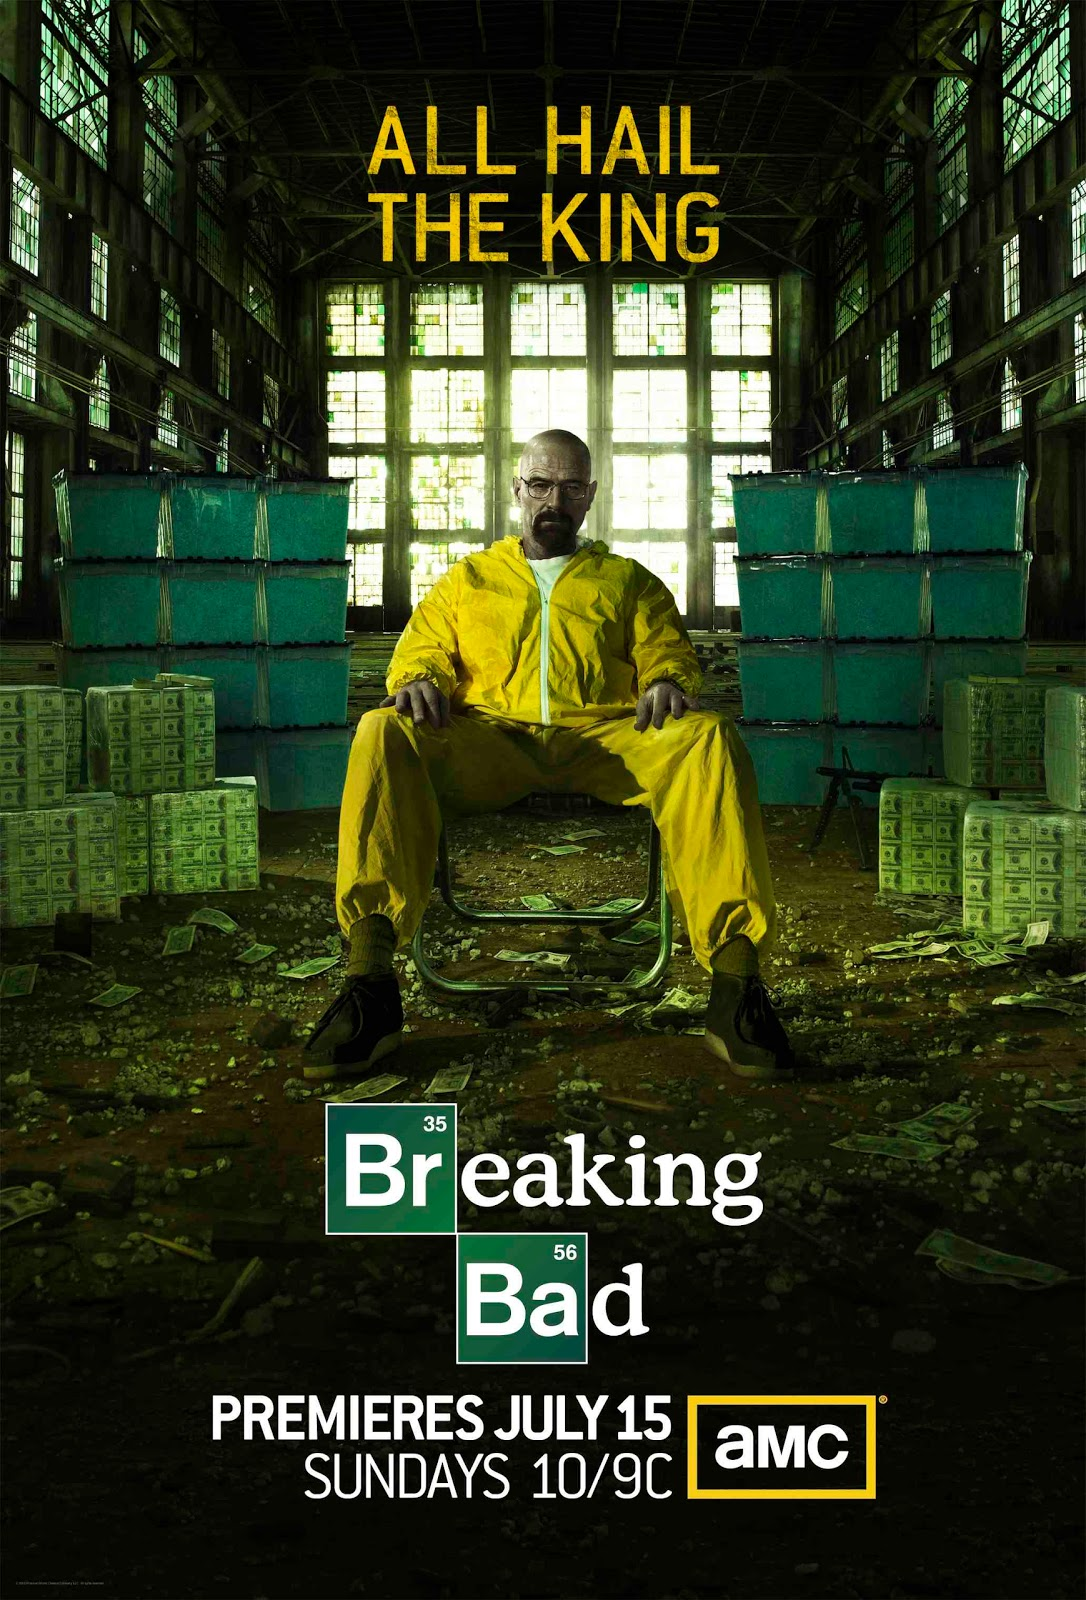 http://3.bp.blogspot.com/-6E8d_TedLX4/T80VMkMCgTI/AAAAAAAAElU/p7GvMII5Qfg/s1600/breaking-bad-season5-poster-walter-white-all-hail-the-king-heisenberg-jessie-meth-wallpaper-sezon.jpg